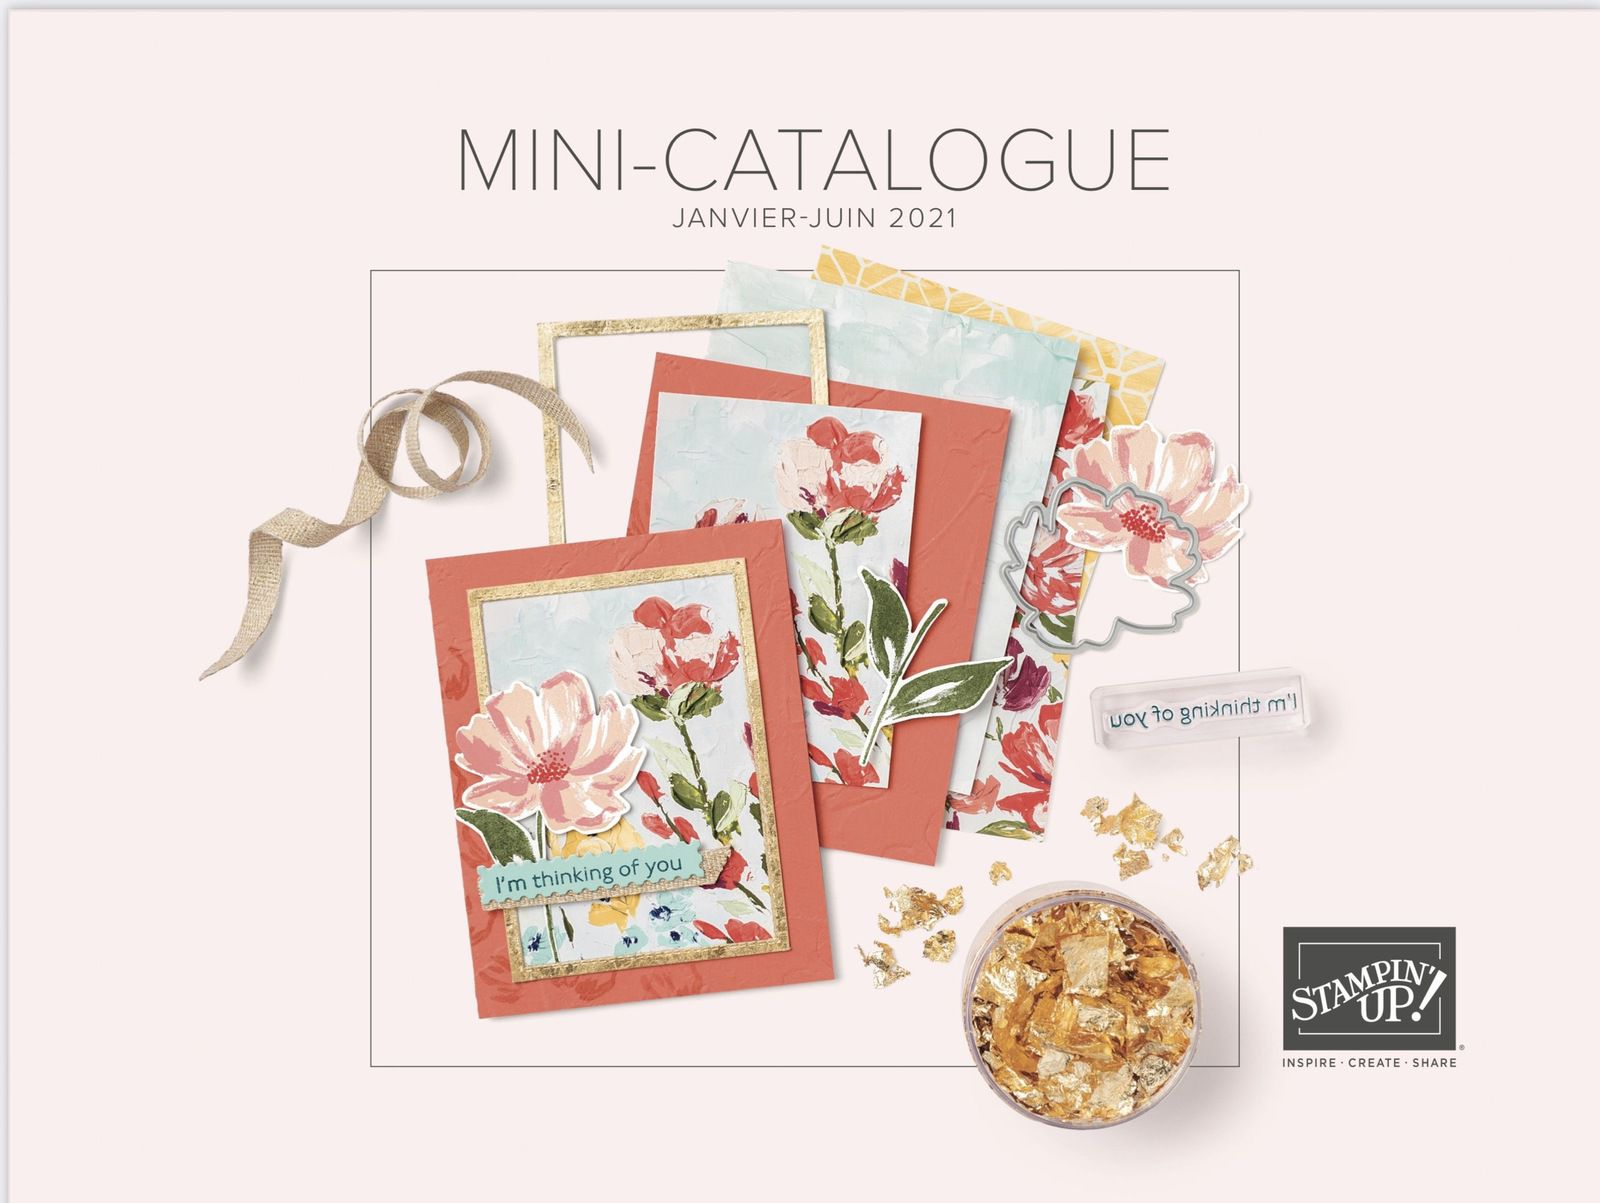 Mini catalogue janvier-juin 2021 Stampin'Up!